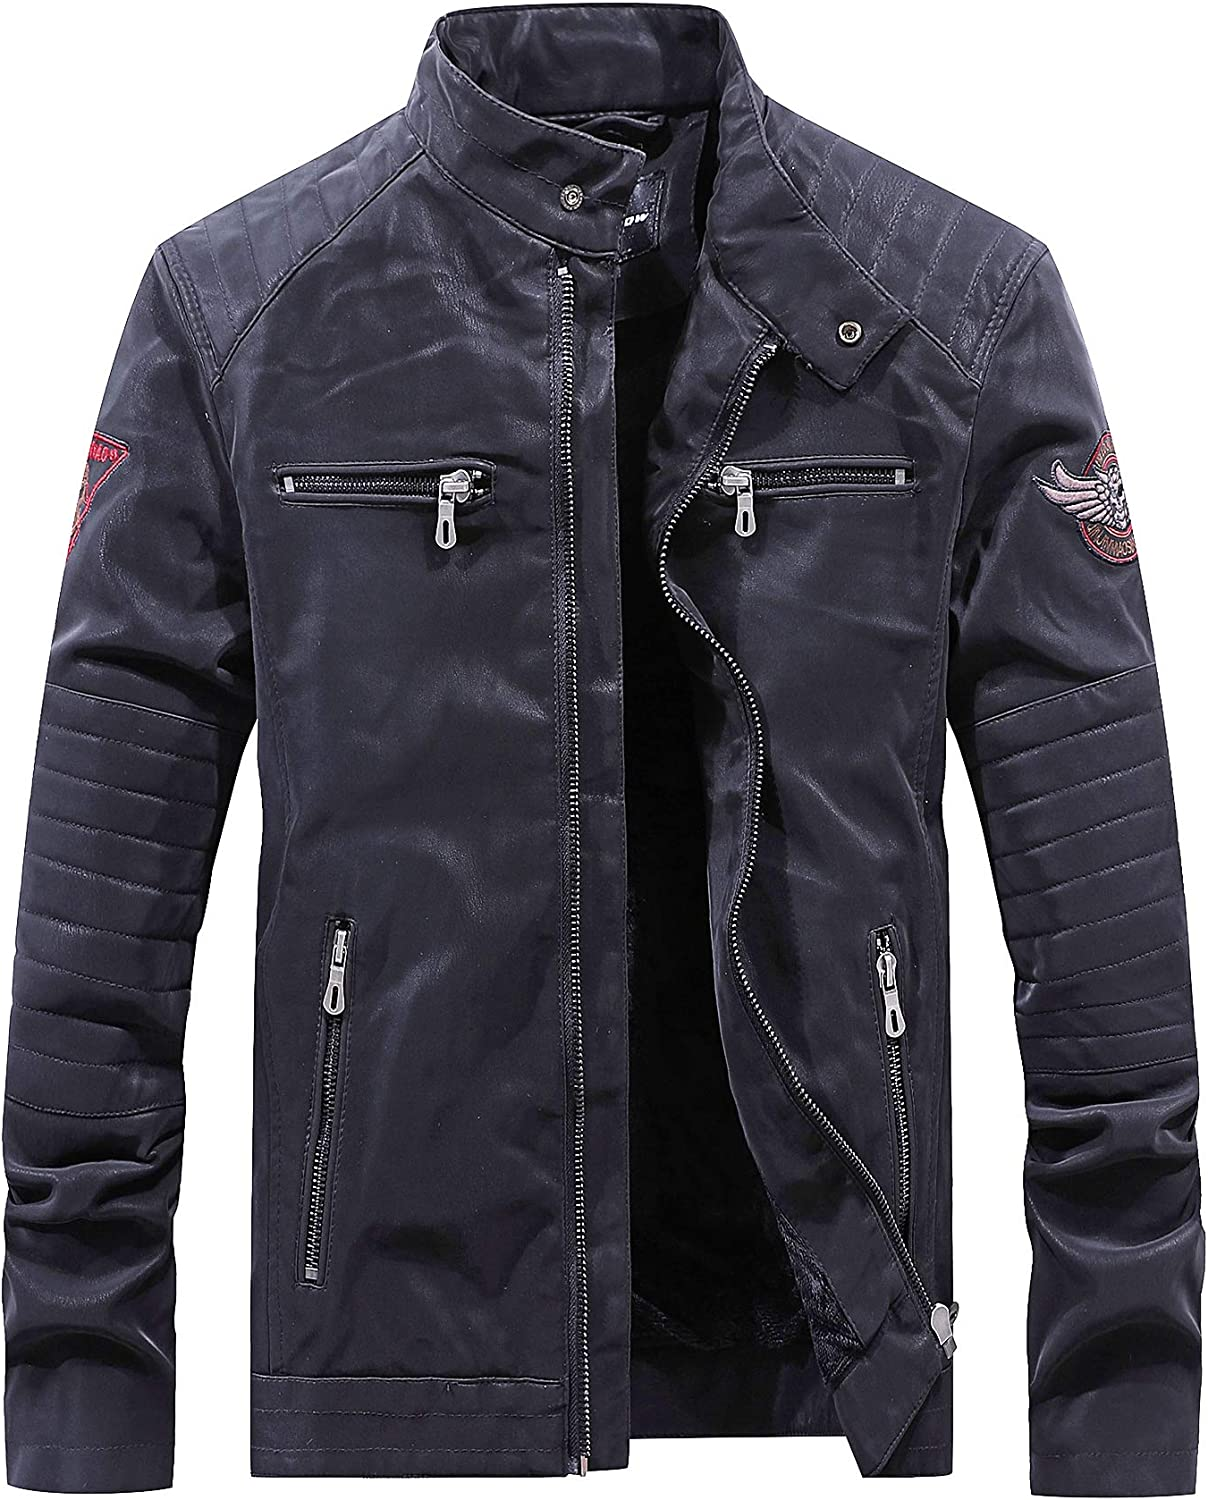 JINJINNIAO Mens Faux Leather Full Zip Thick Jacket 8806 Series